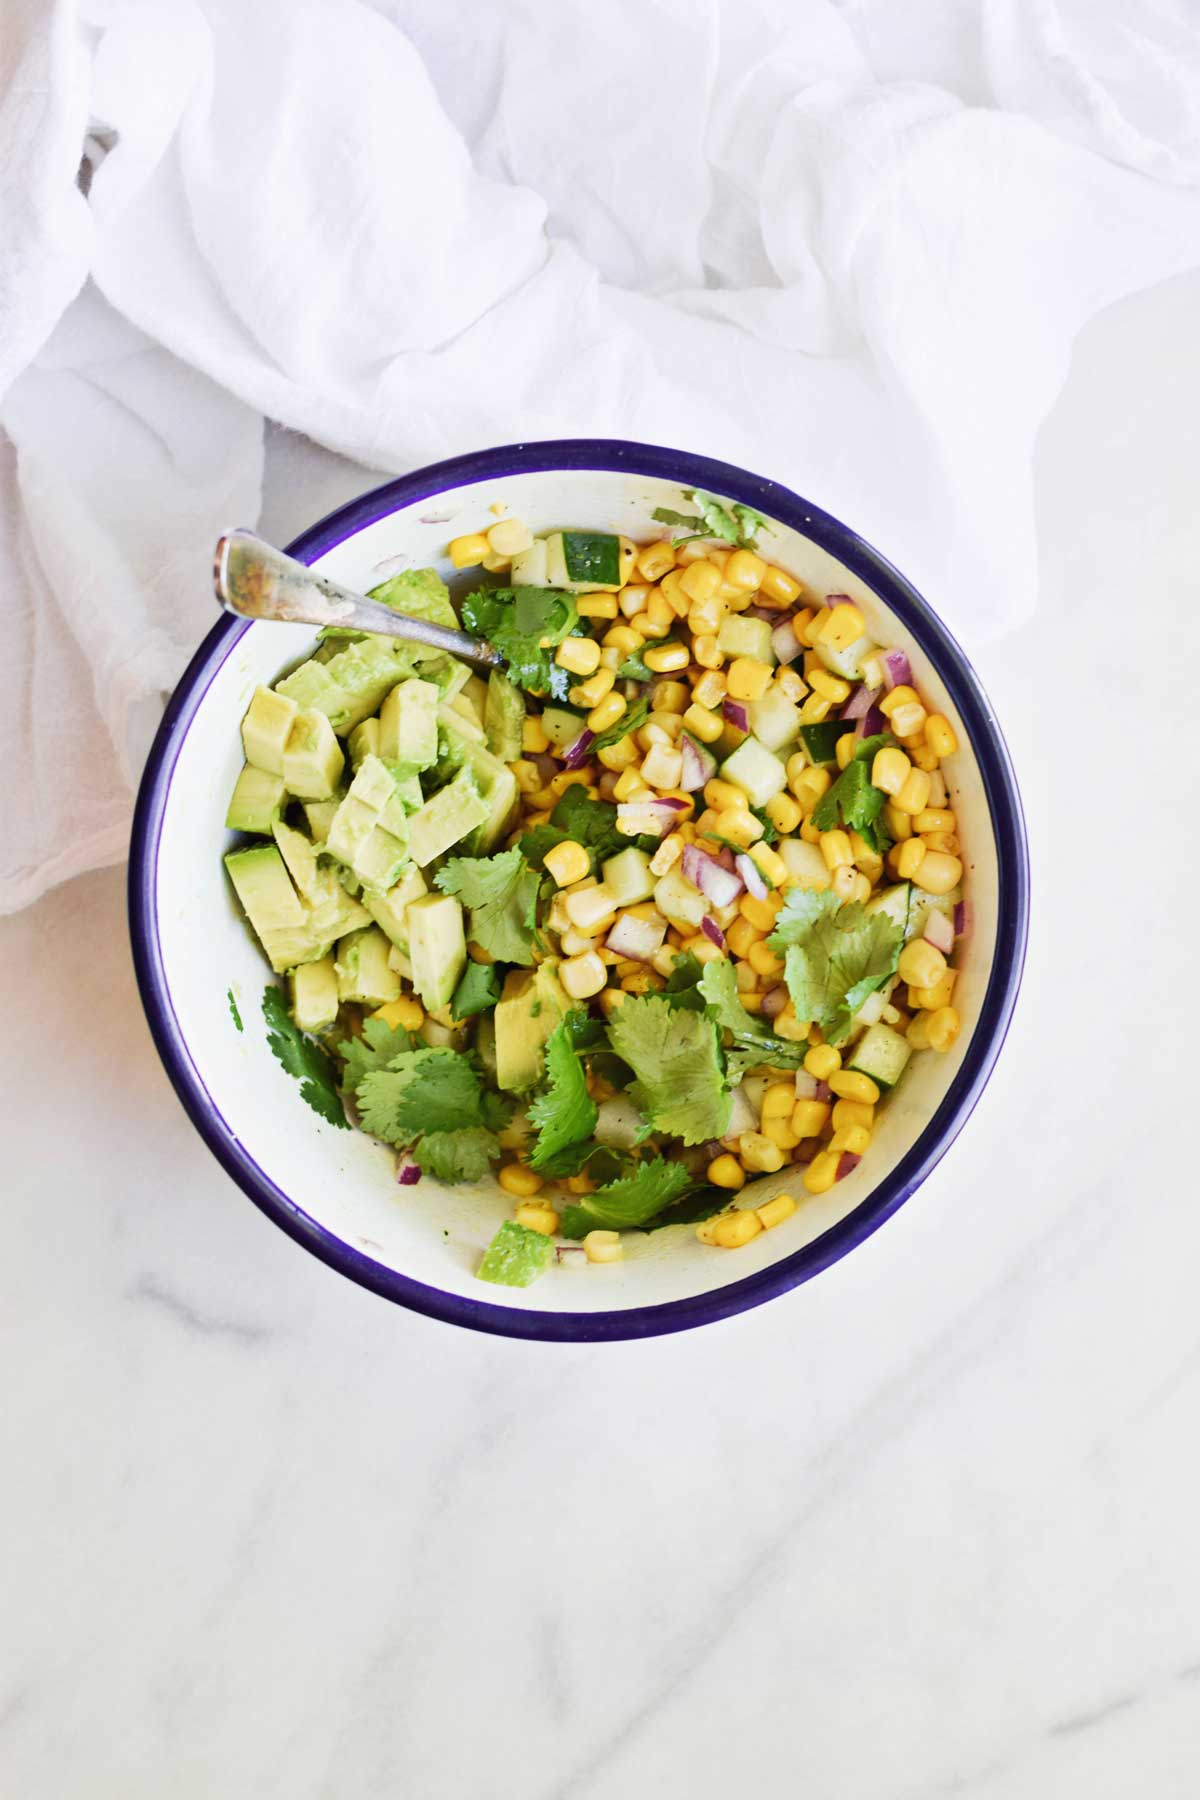 SWEET CORN SALAD WITH AVOCADO